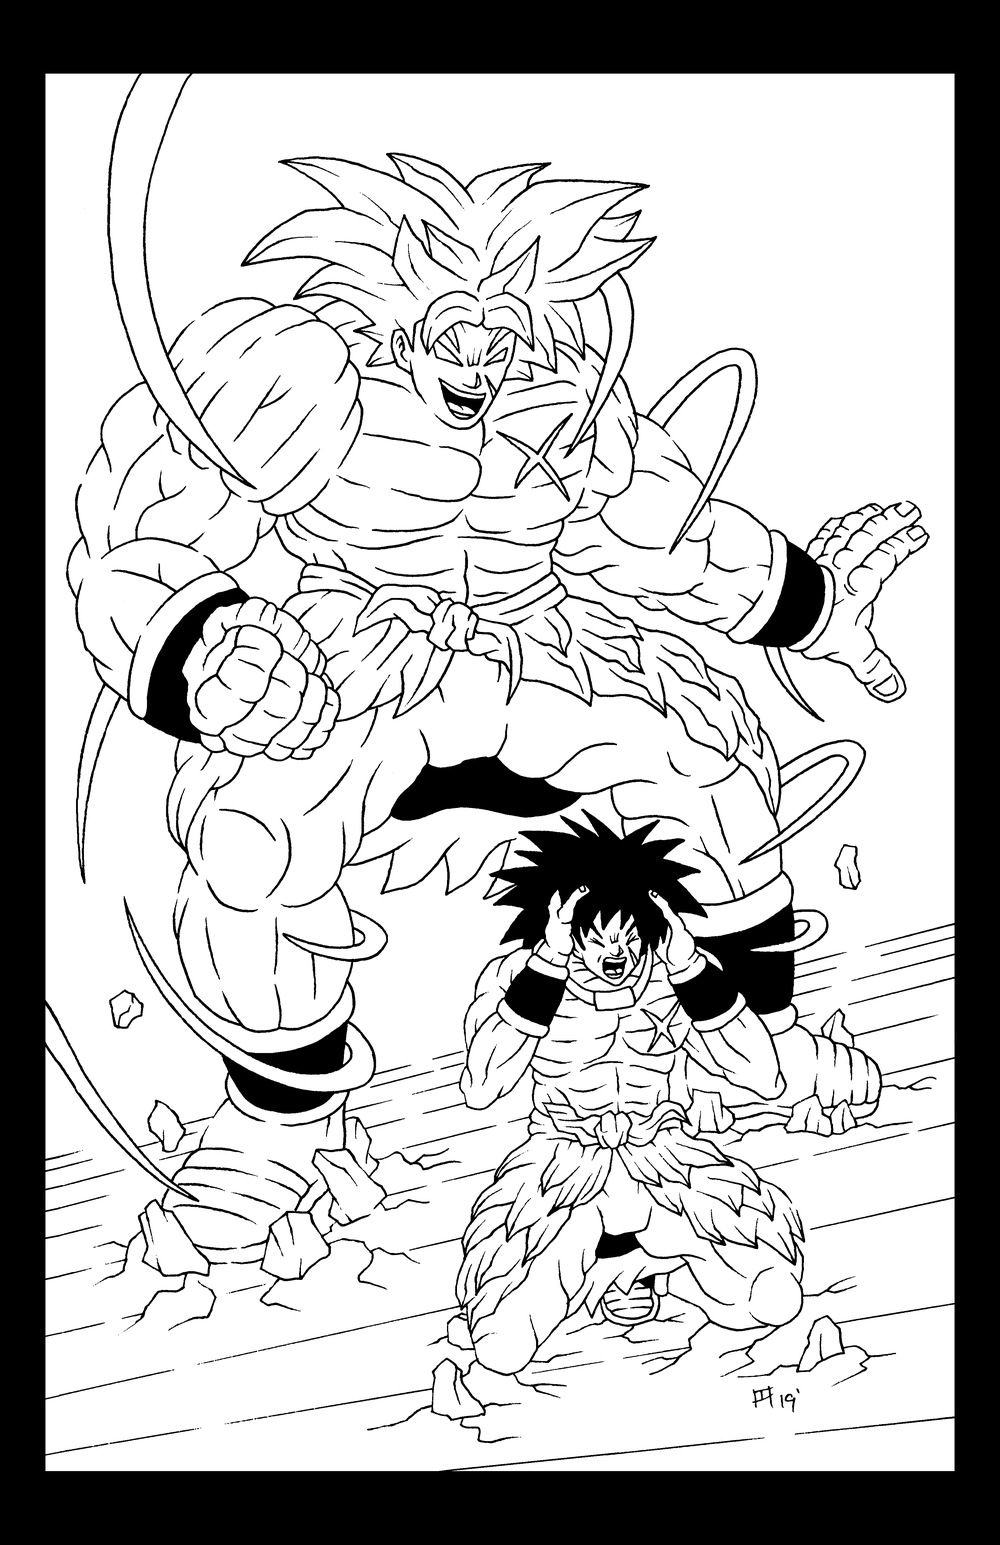 Broly_BW.png